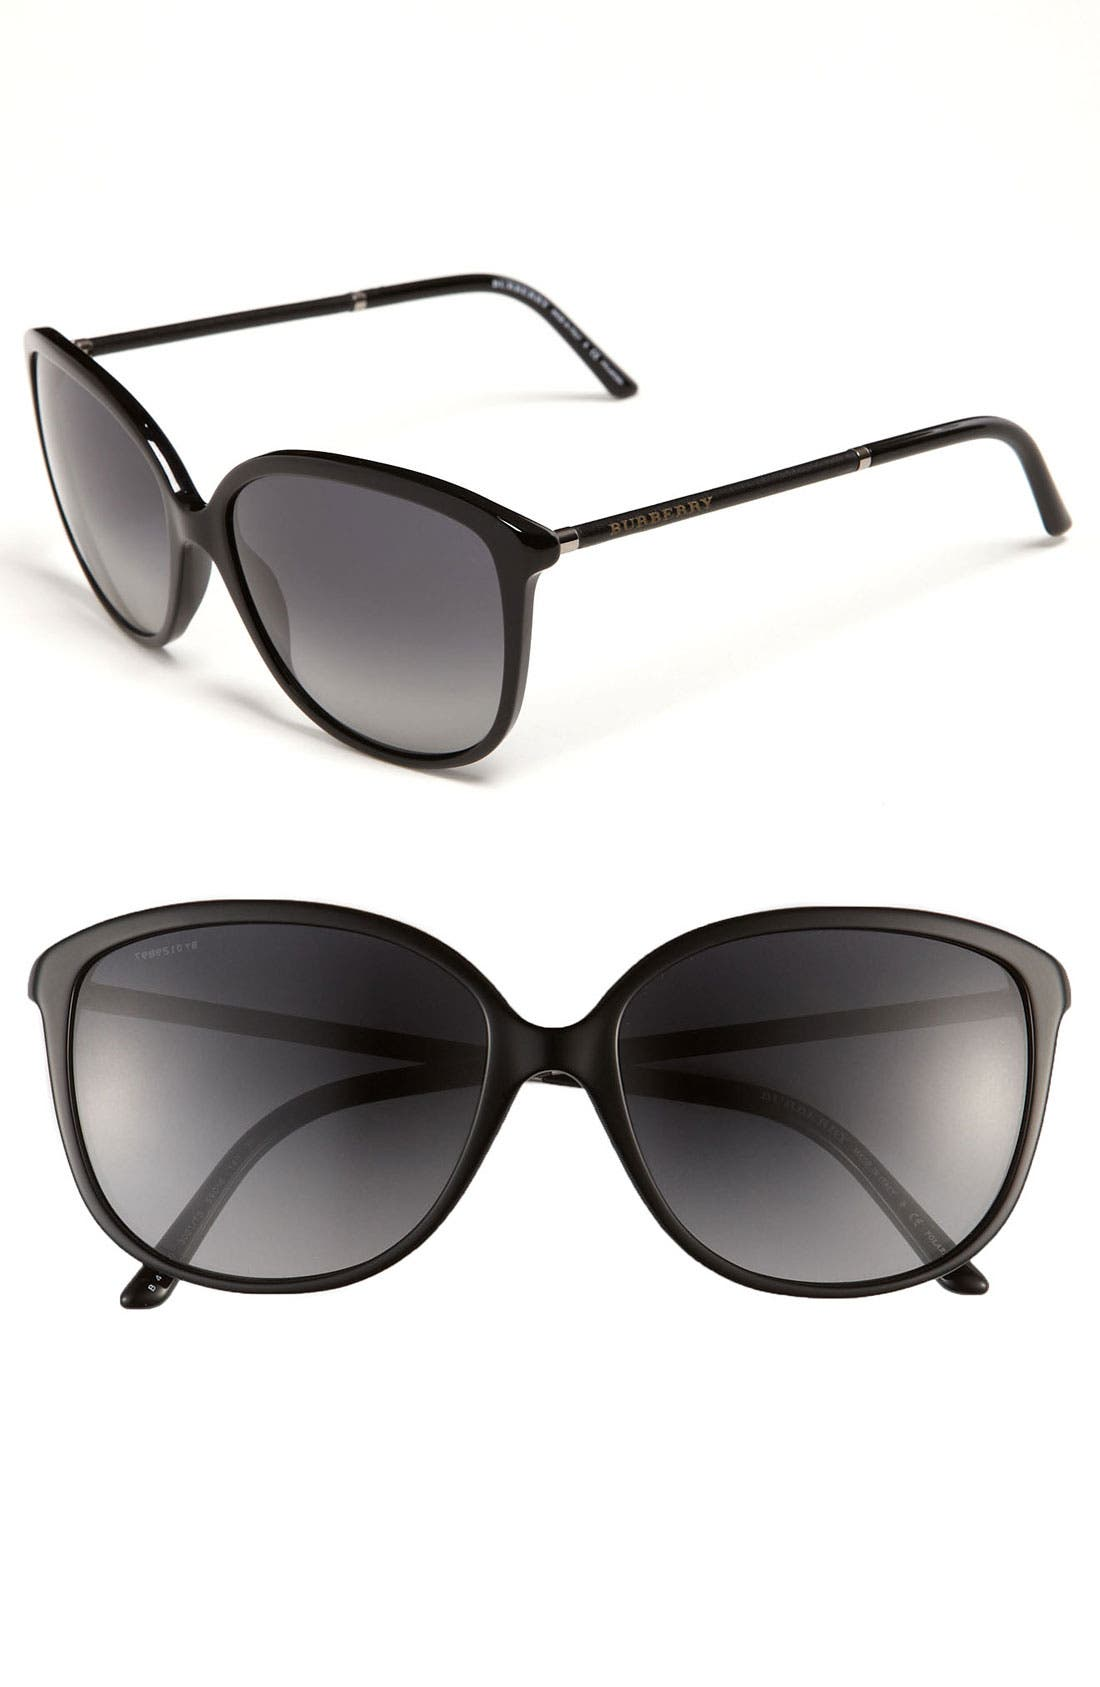 Alternate Image 1 Selected - Burberry Retro Polarized Sunglasses